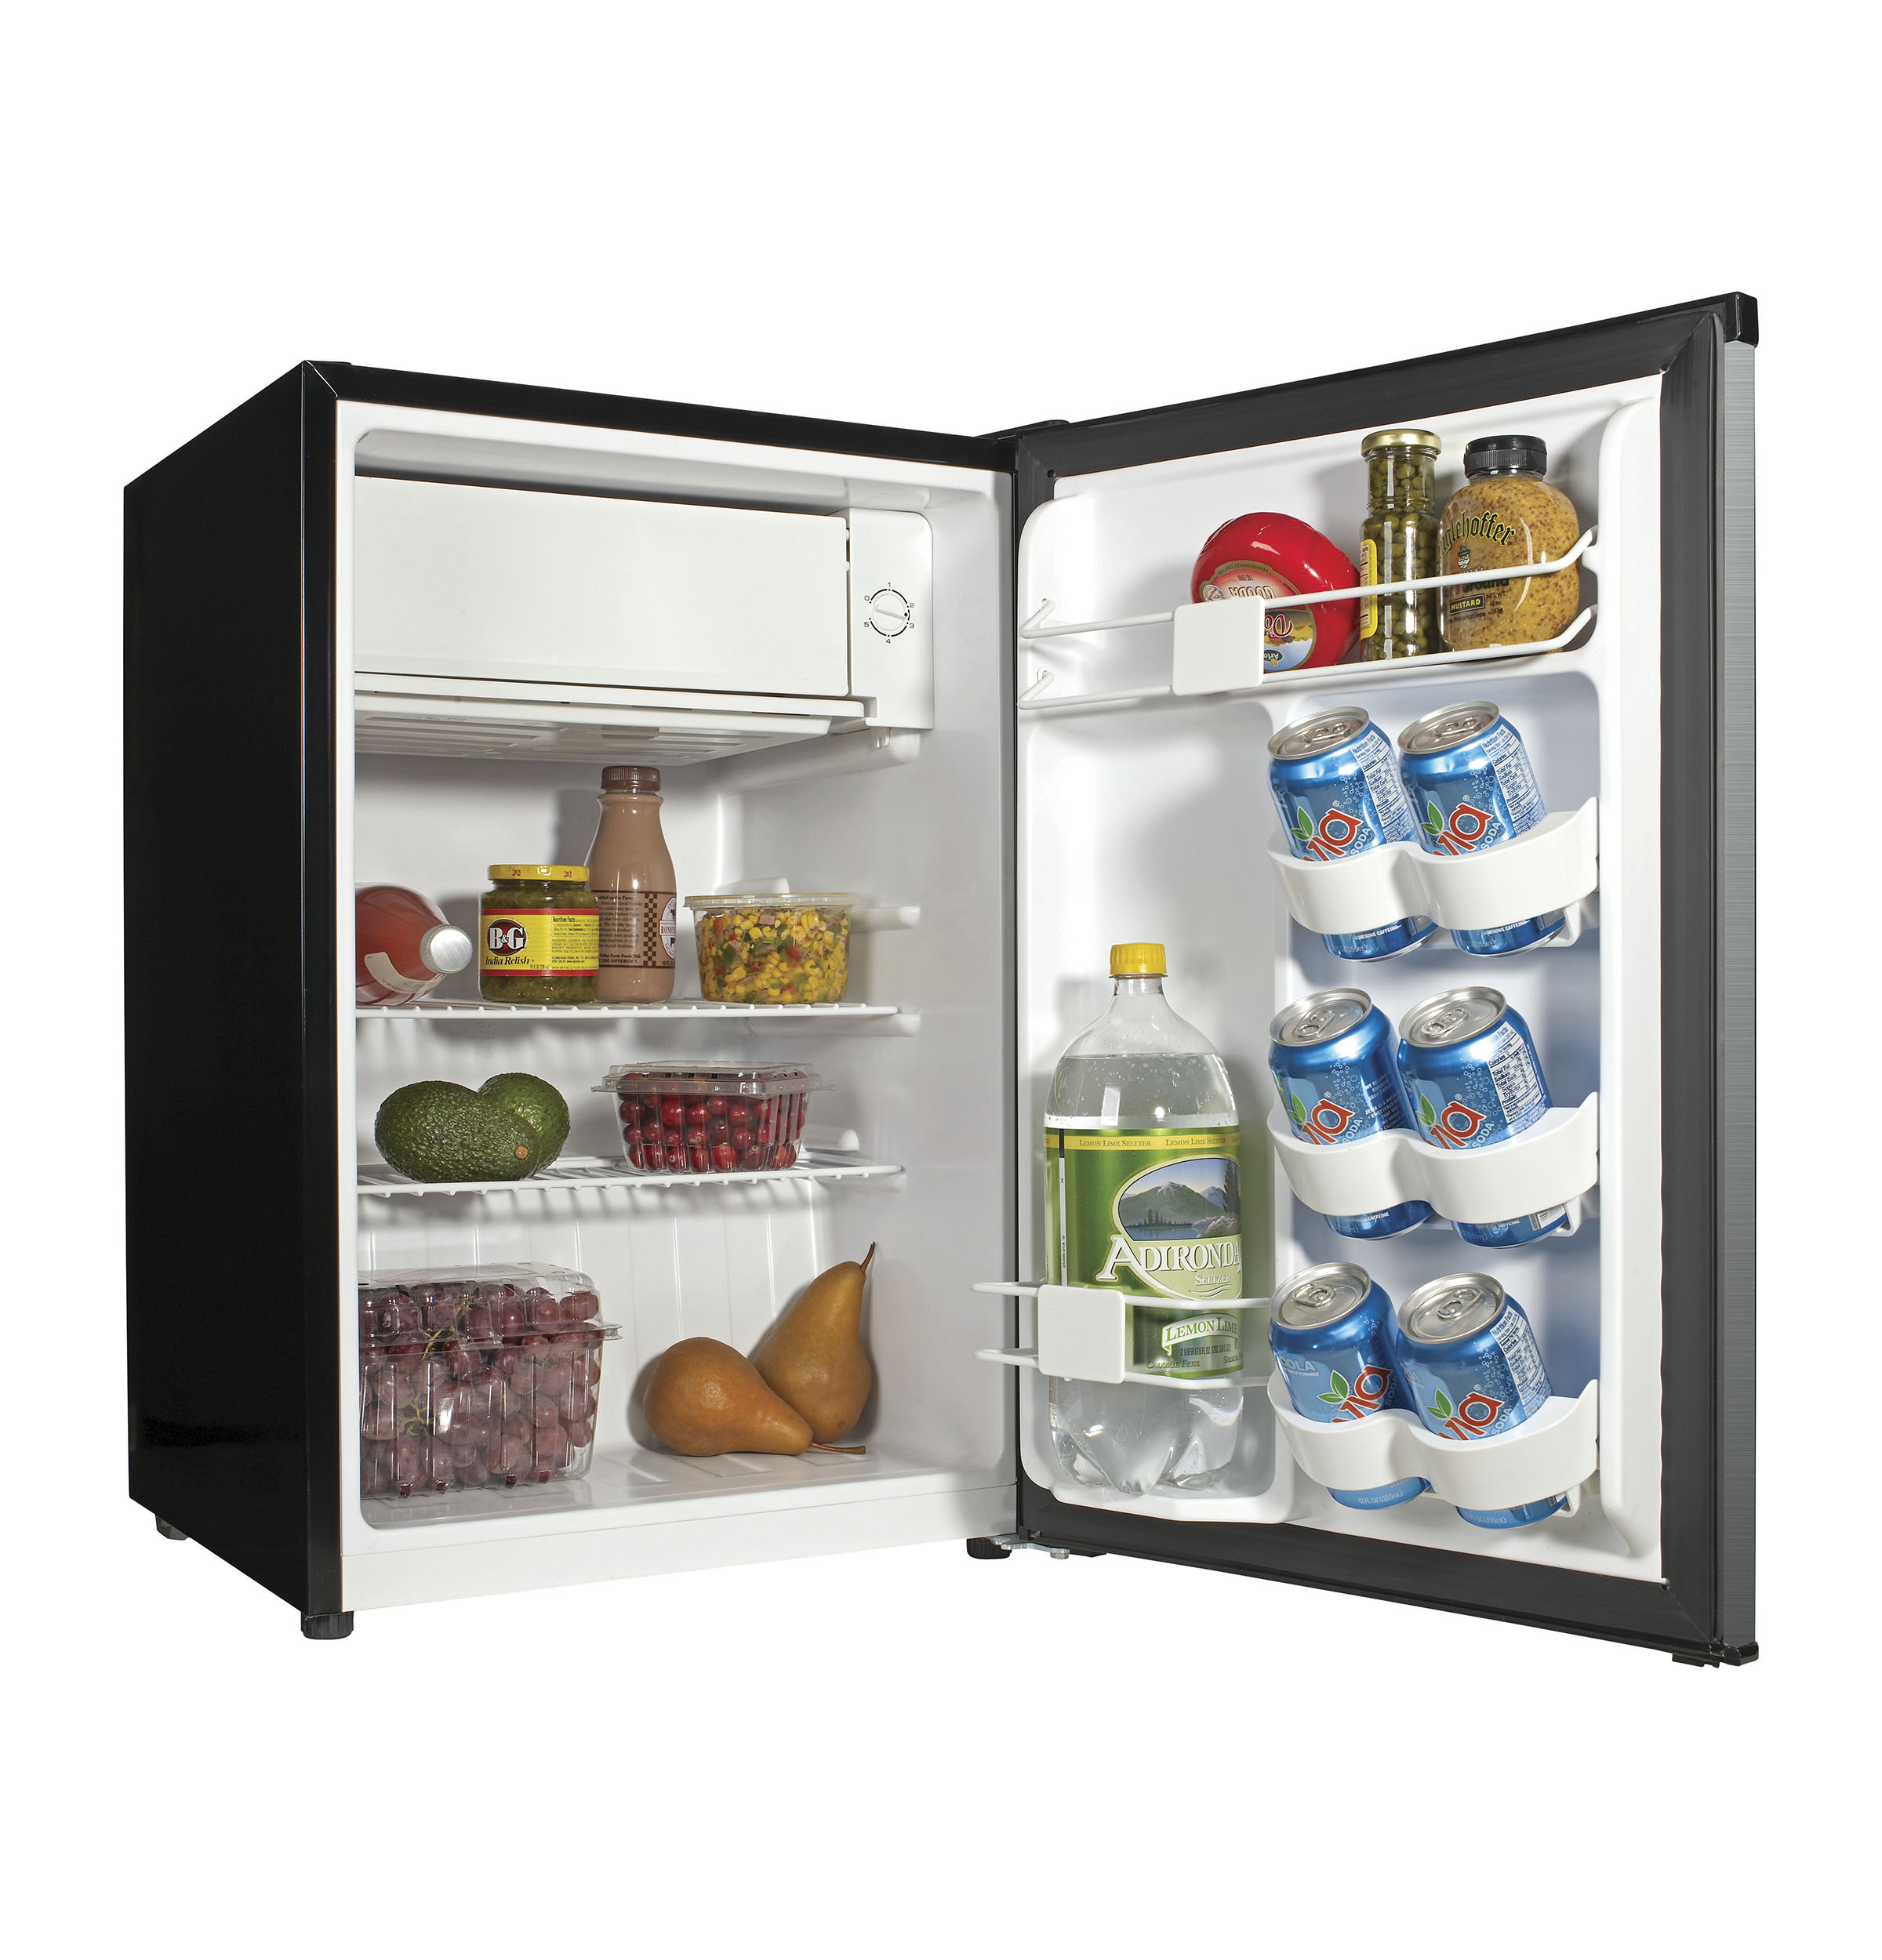 Virtual Dorm Room Design: HC27SW20RV -2.7 Cu. Ft. Compact Refrigerator